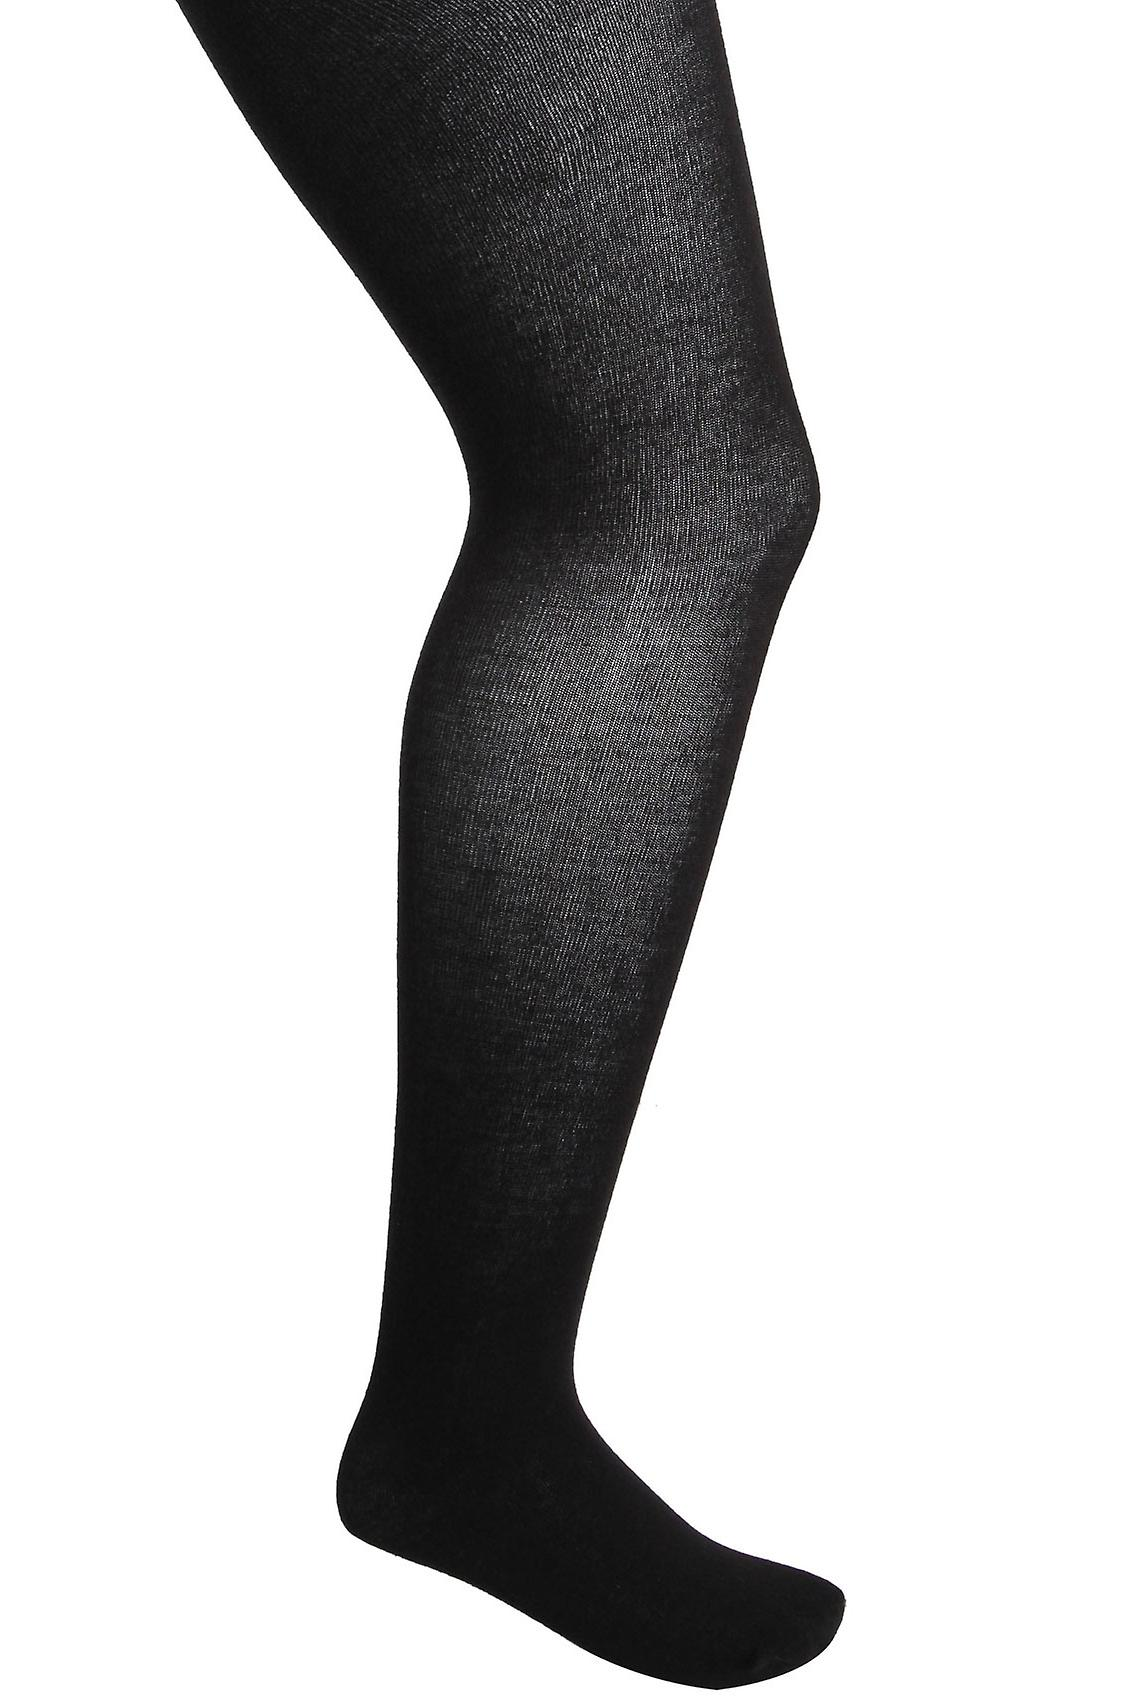 Noir 200 Denier Supersoft collants épais